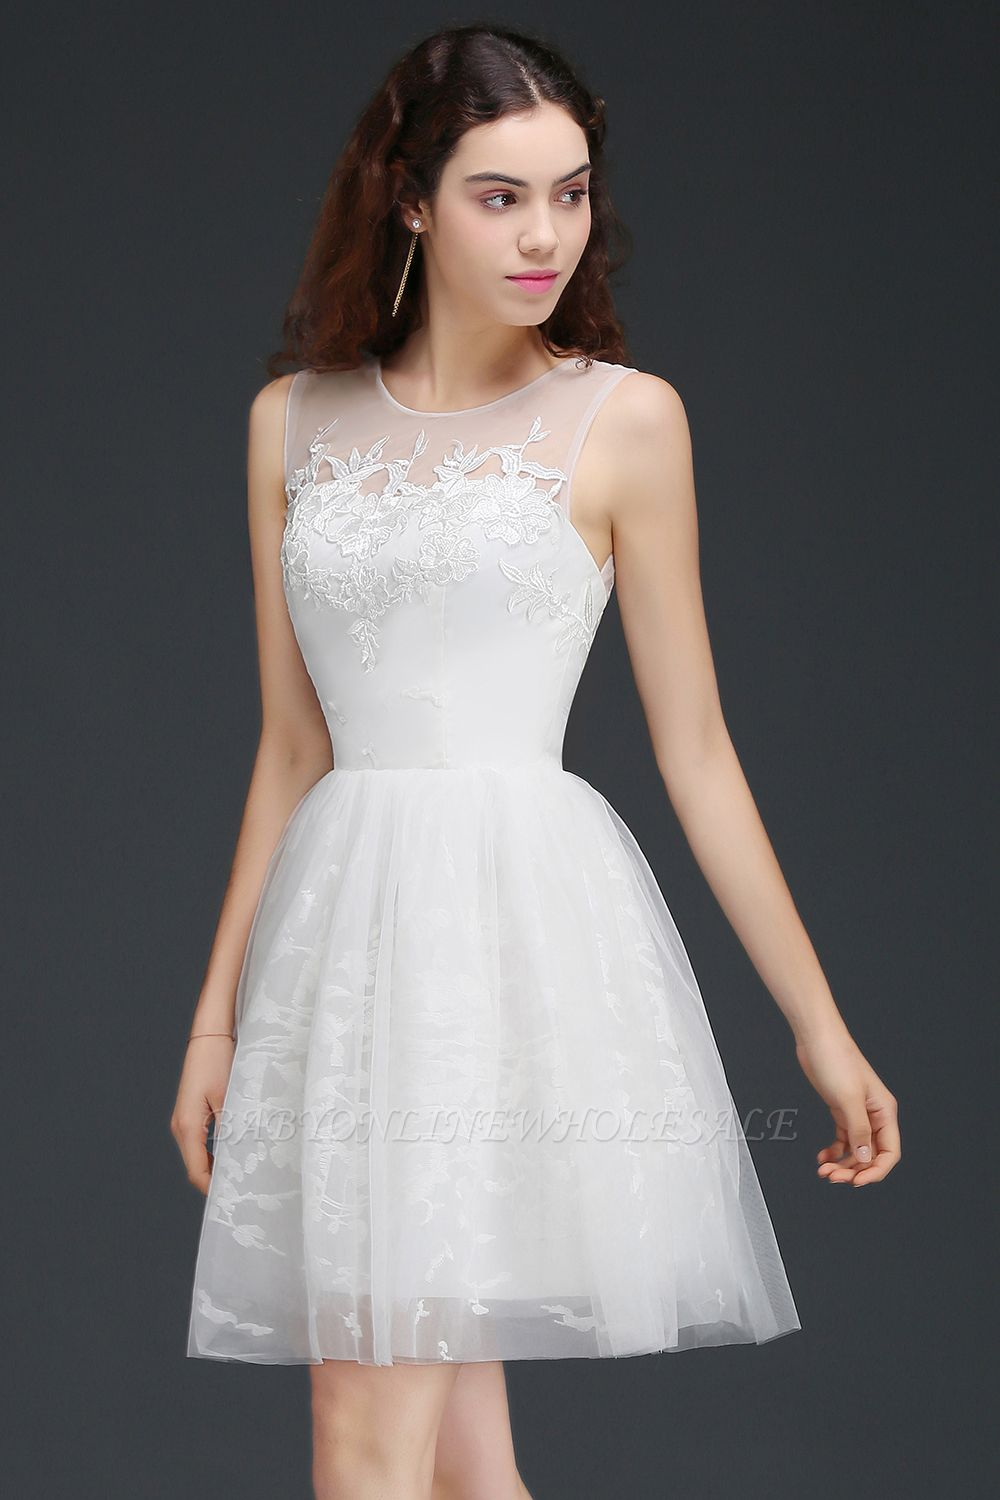 ALEXANDRIA | A Line Sheer Whit Short Tulle Cocktail Dresses With Lace